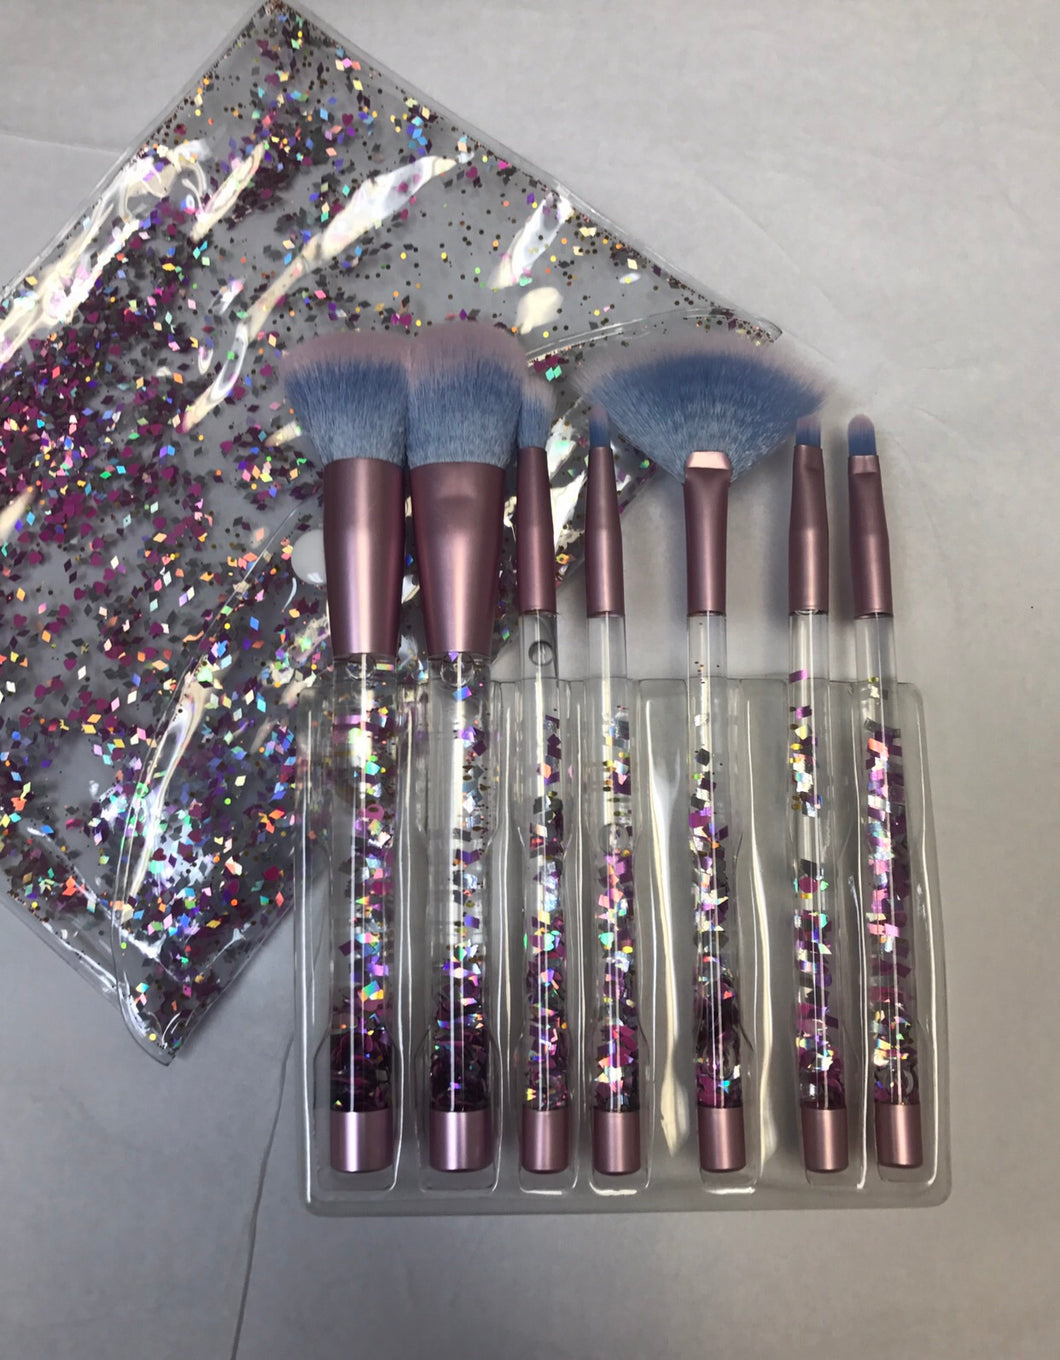 Aquarium Glitter Makeup Brush Set 7pcs